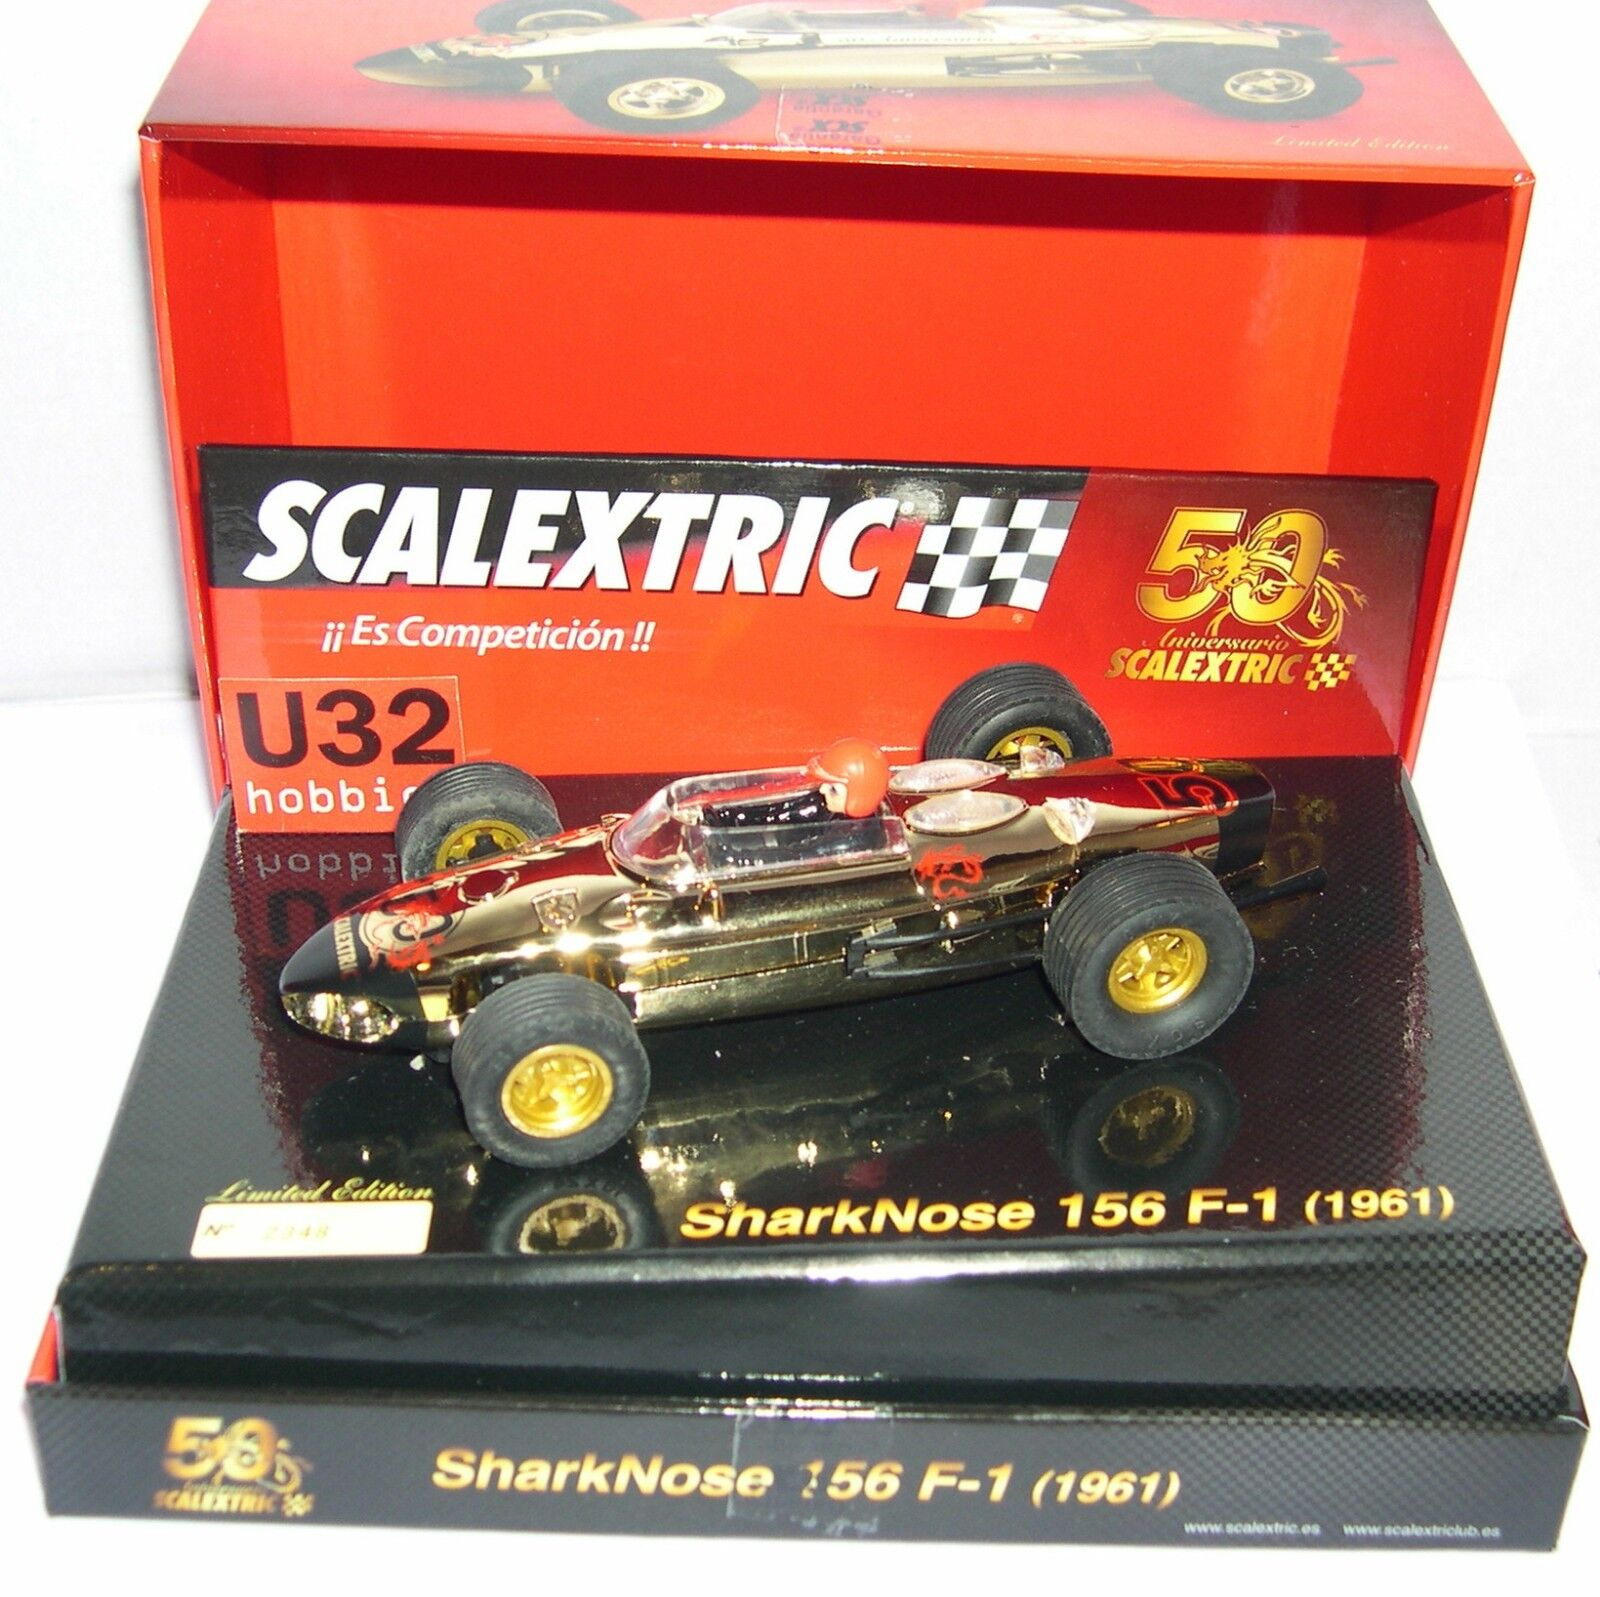 SCALEXTRIC A10106S300 FERRARI 156 SHARKNOSE F1 1961 50 ANNIVERSARY LTED. ED. MB